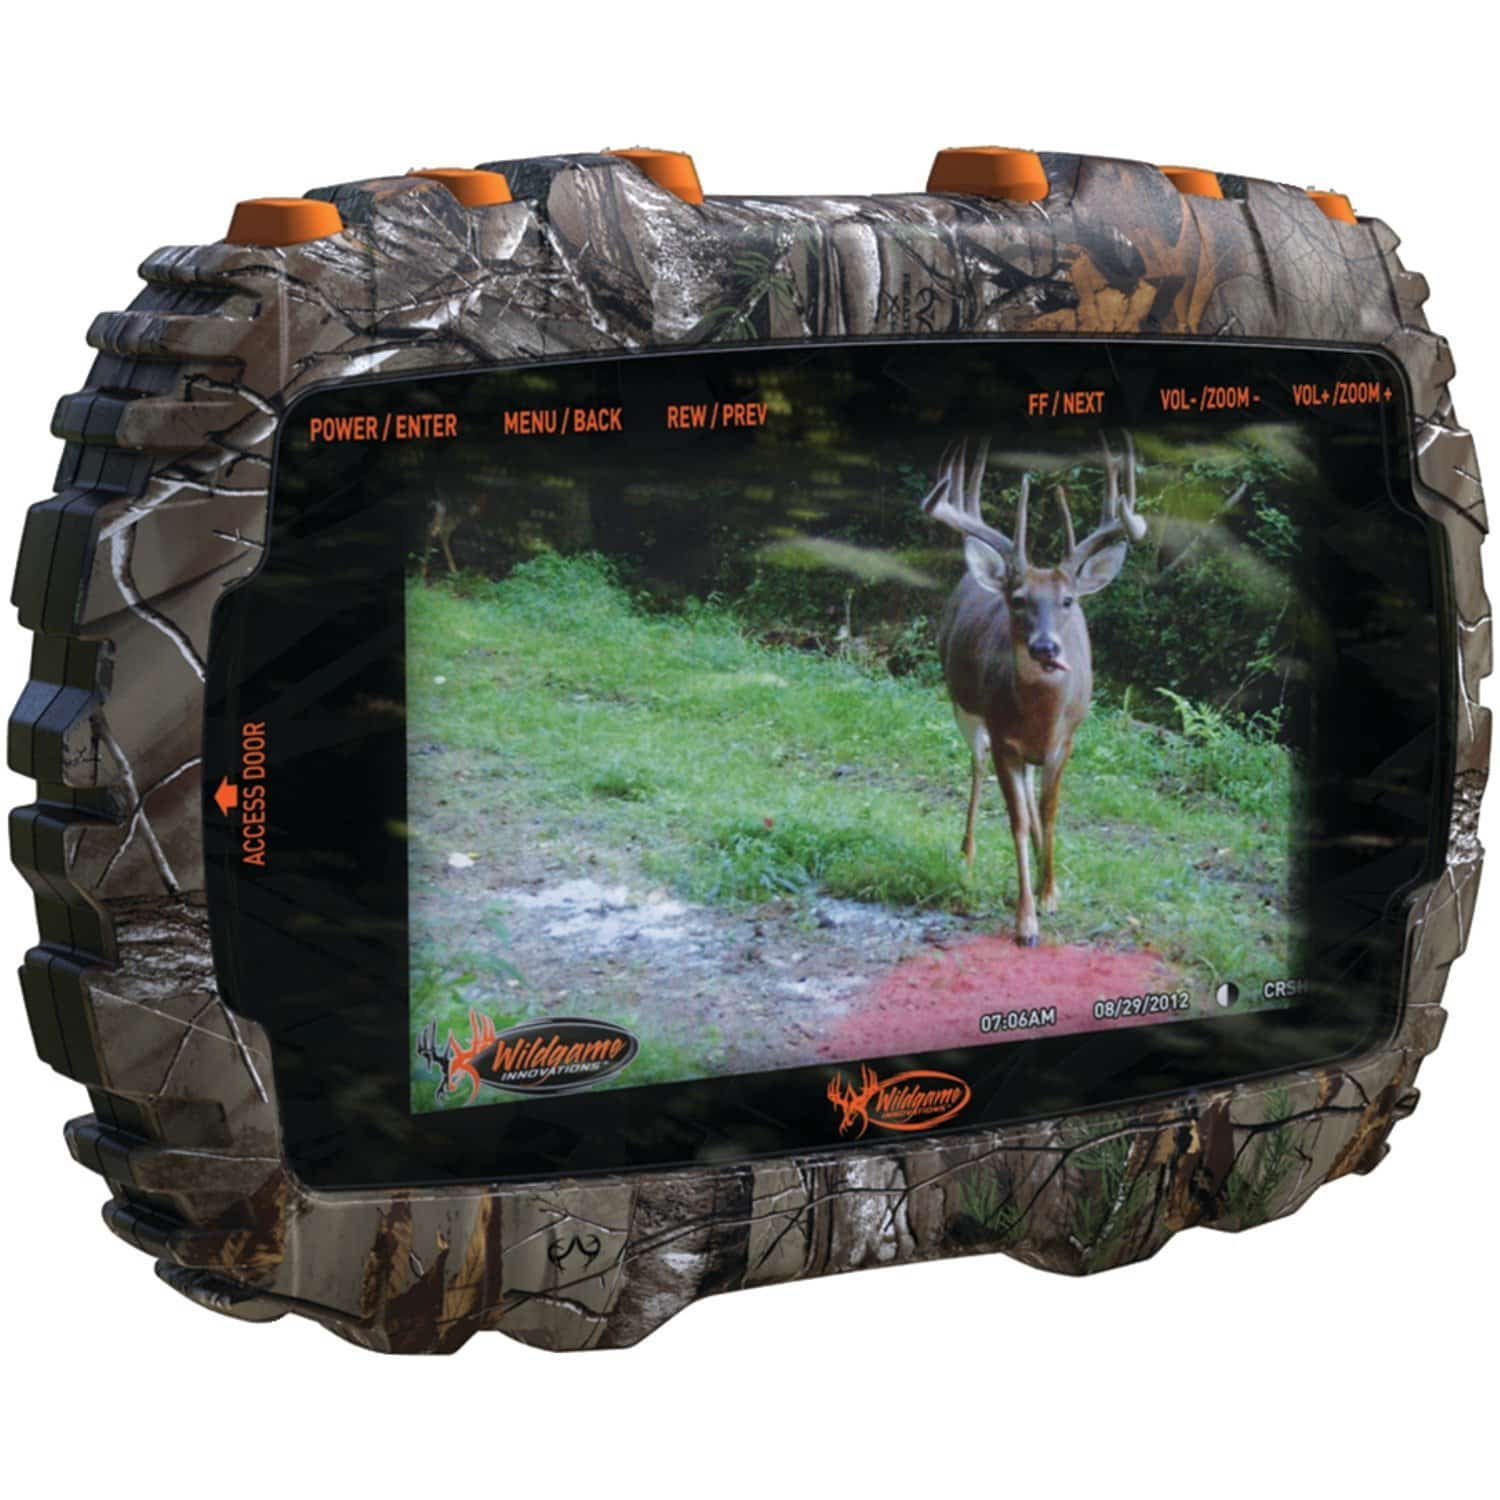 Memory Card Reader for Game Camera